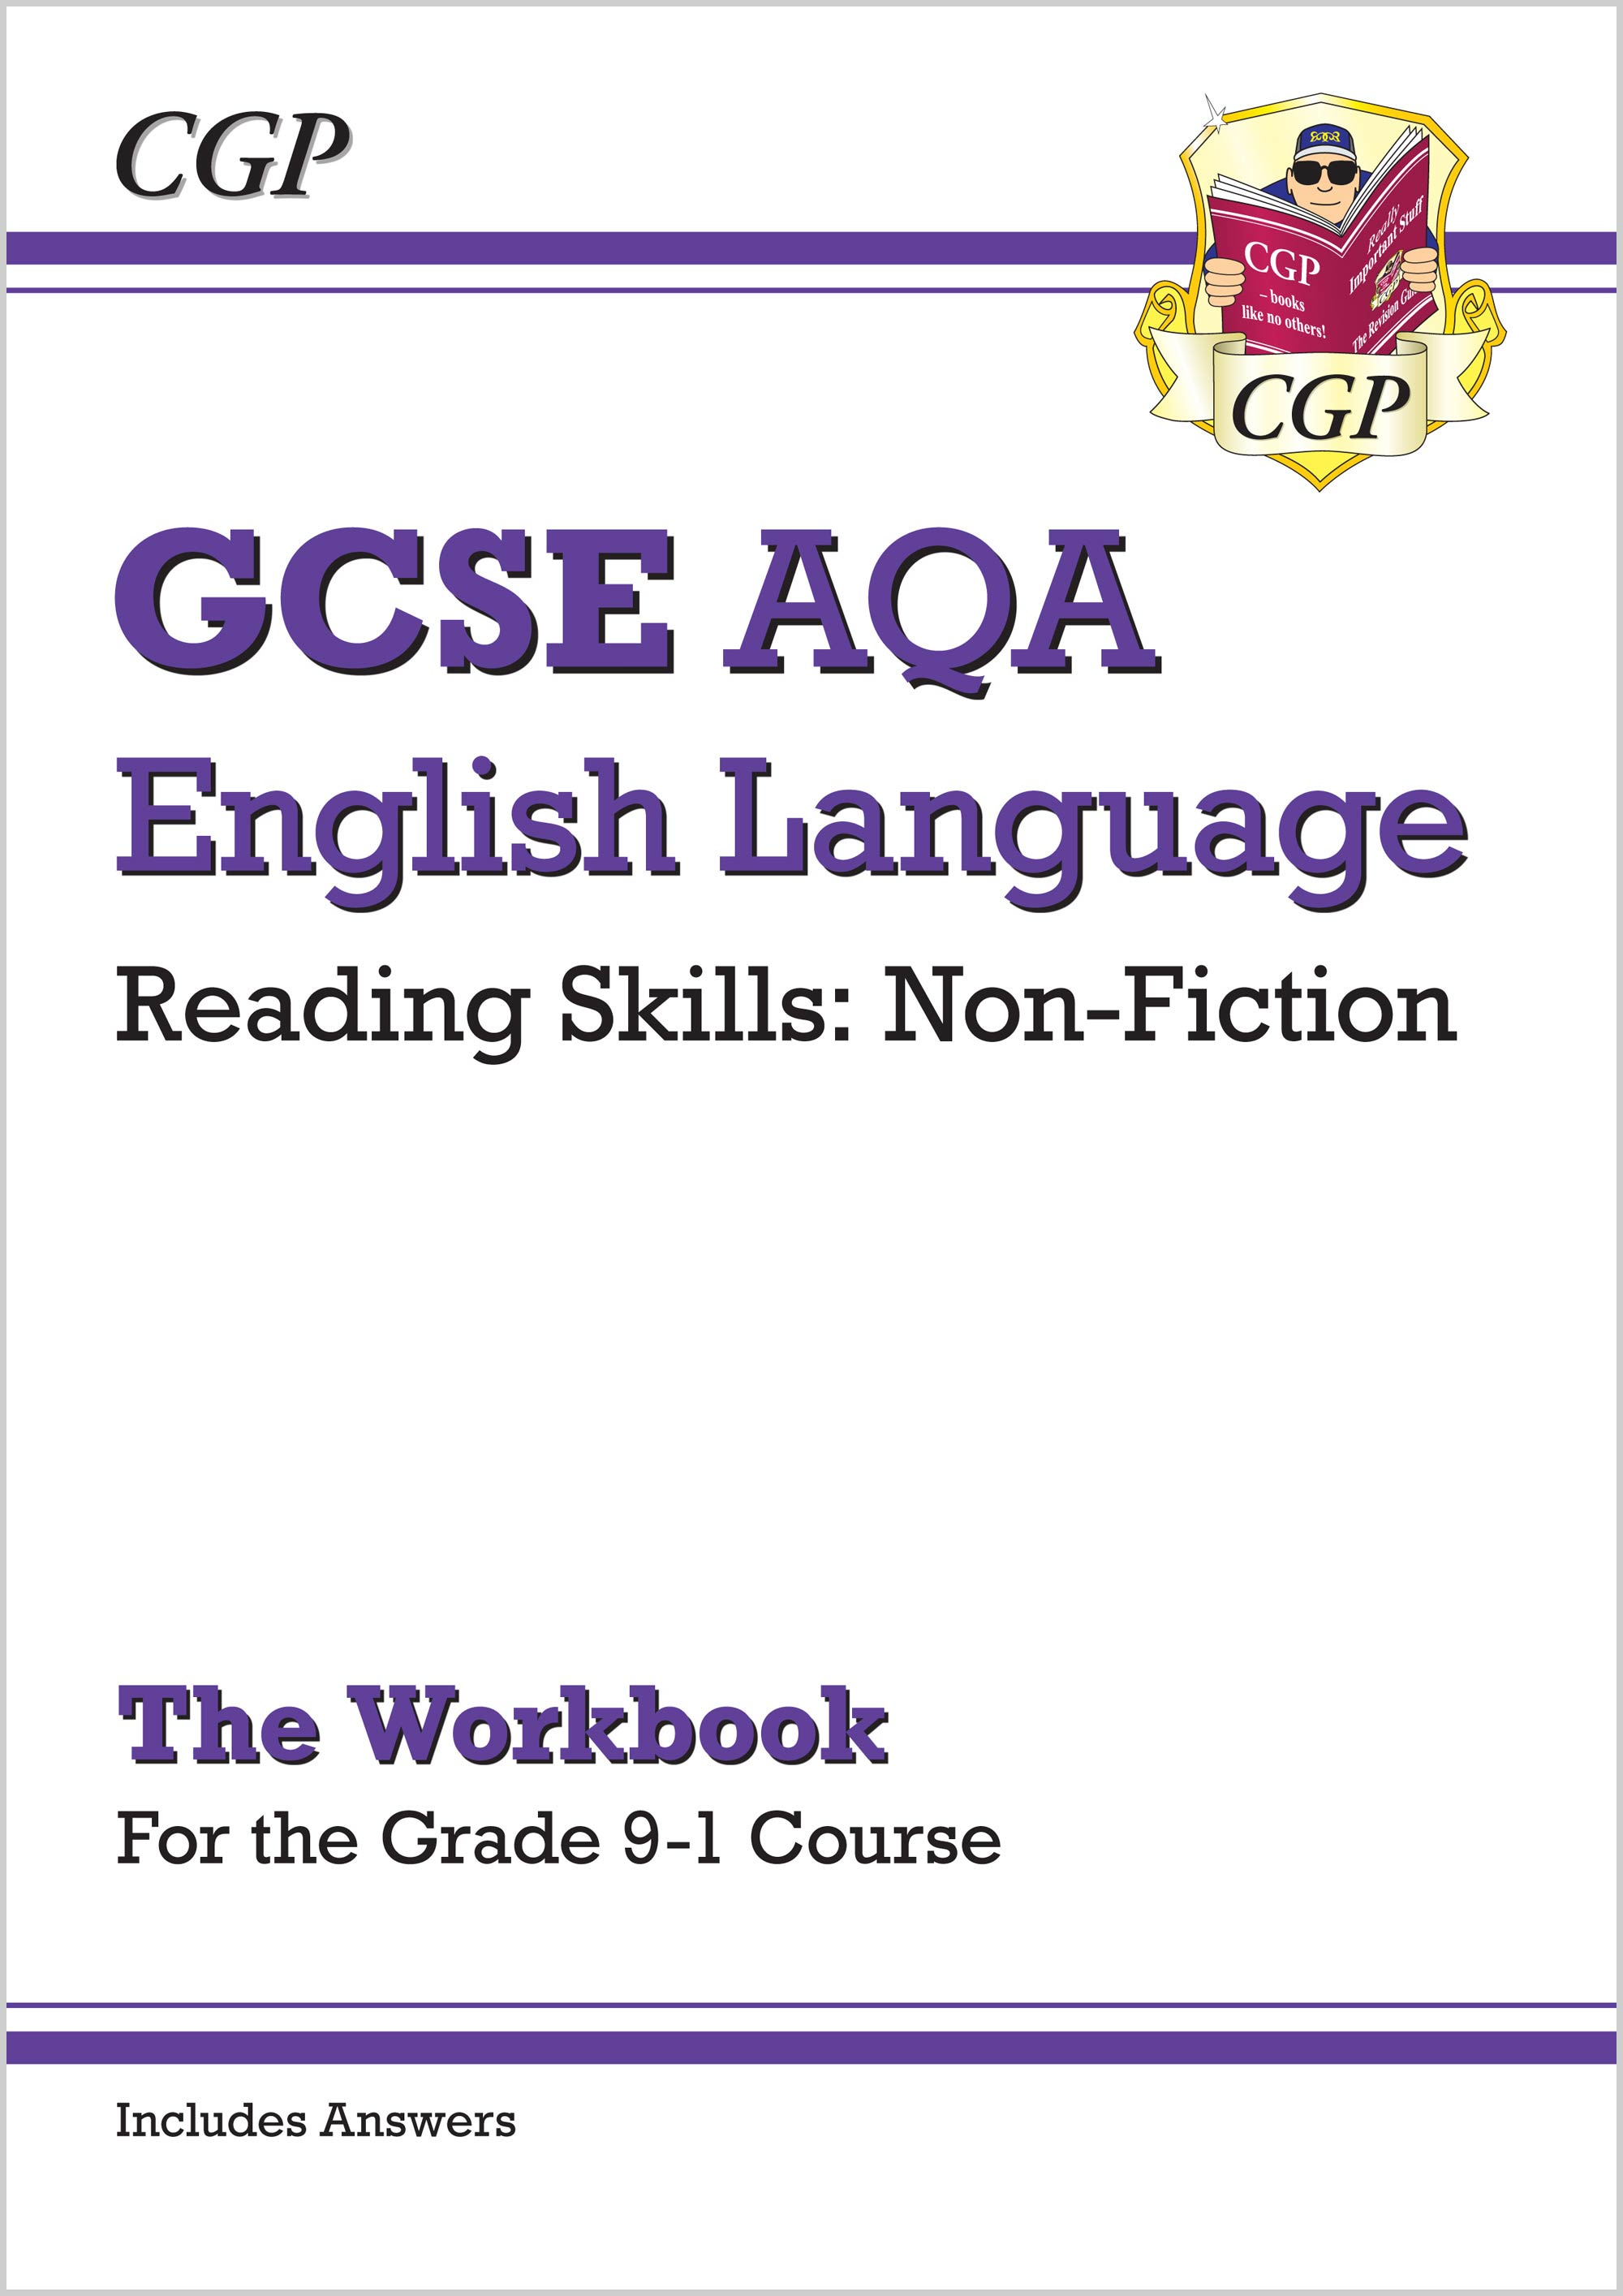 ENCAWN41 - New Grade 9-1 GCSE English Language AQA Reading Skills Workbook: Non-Fiction (includes An